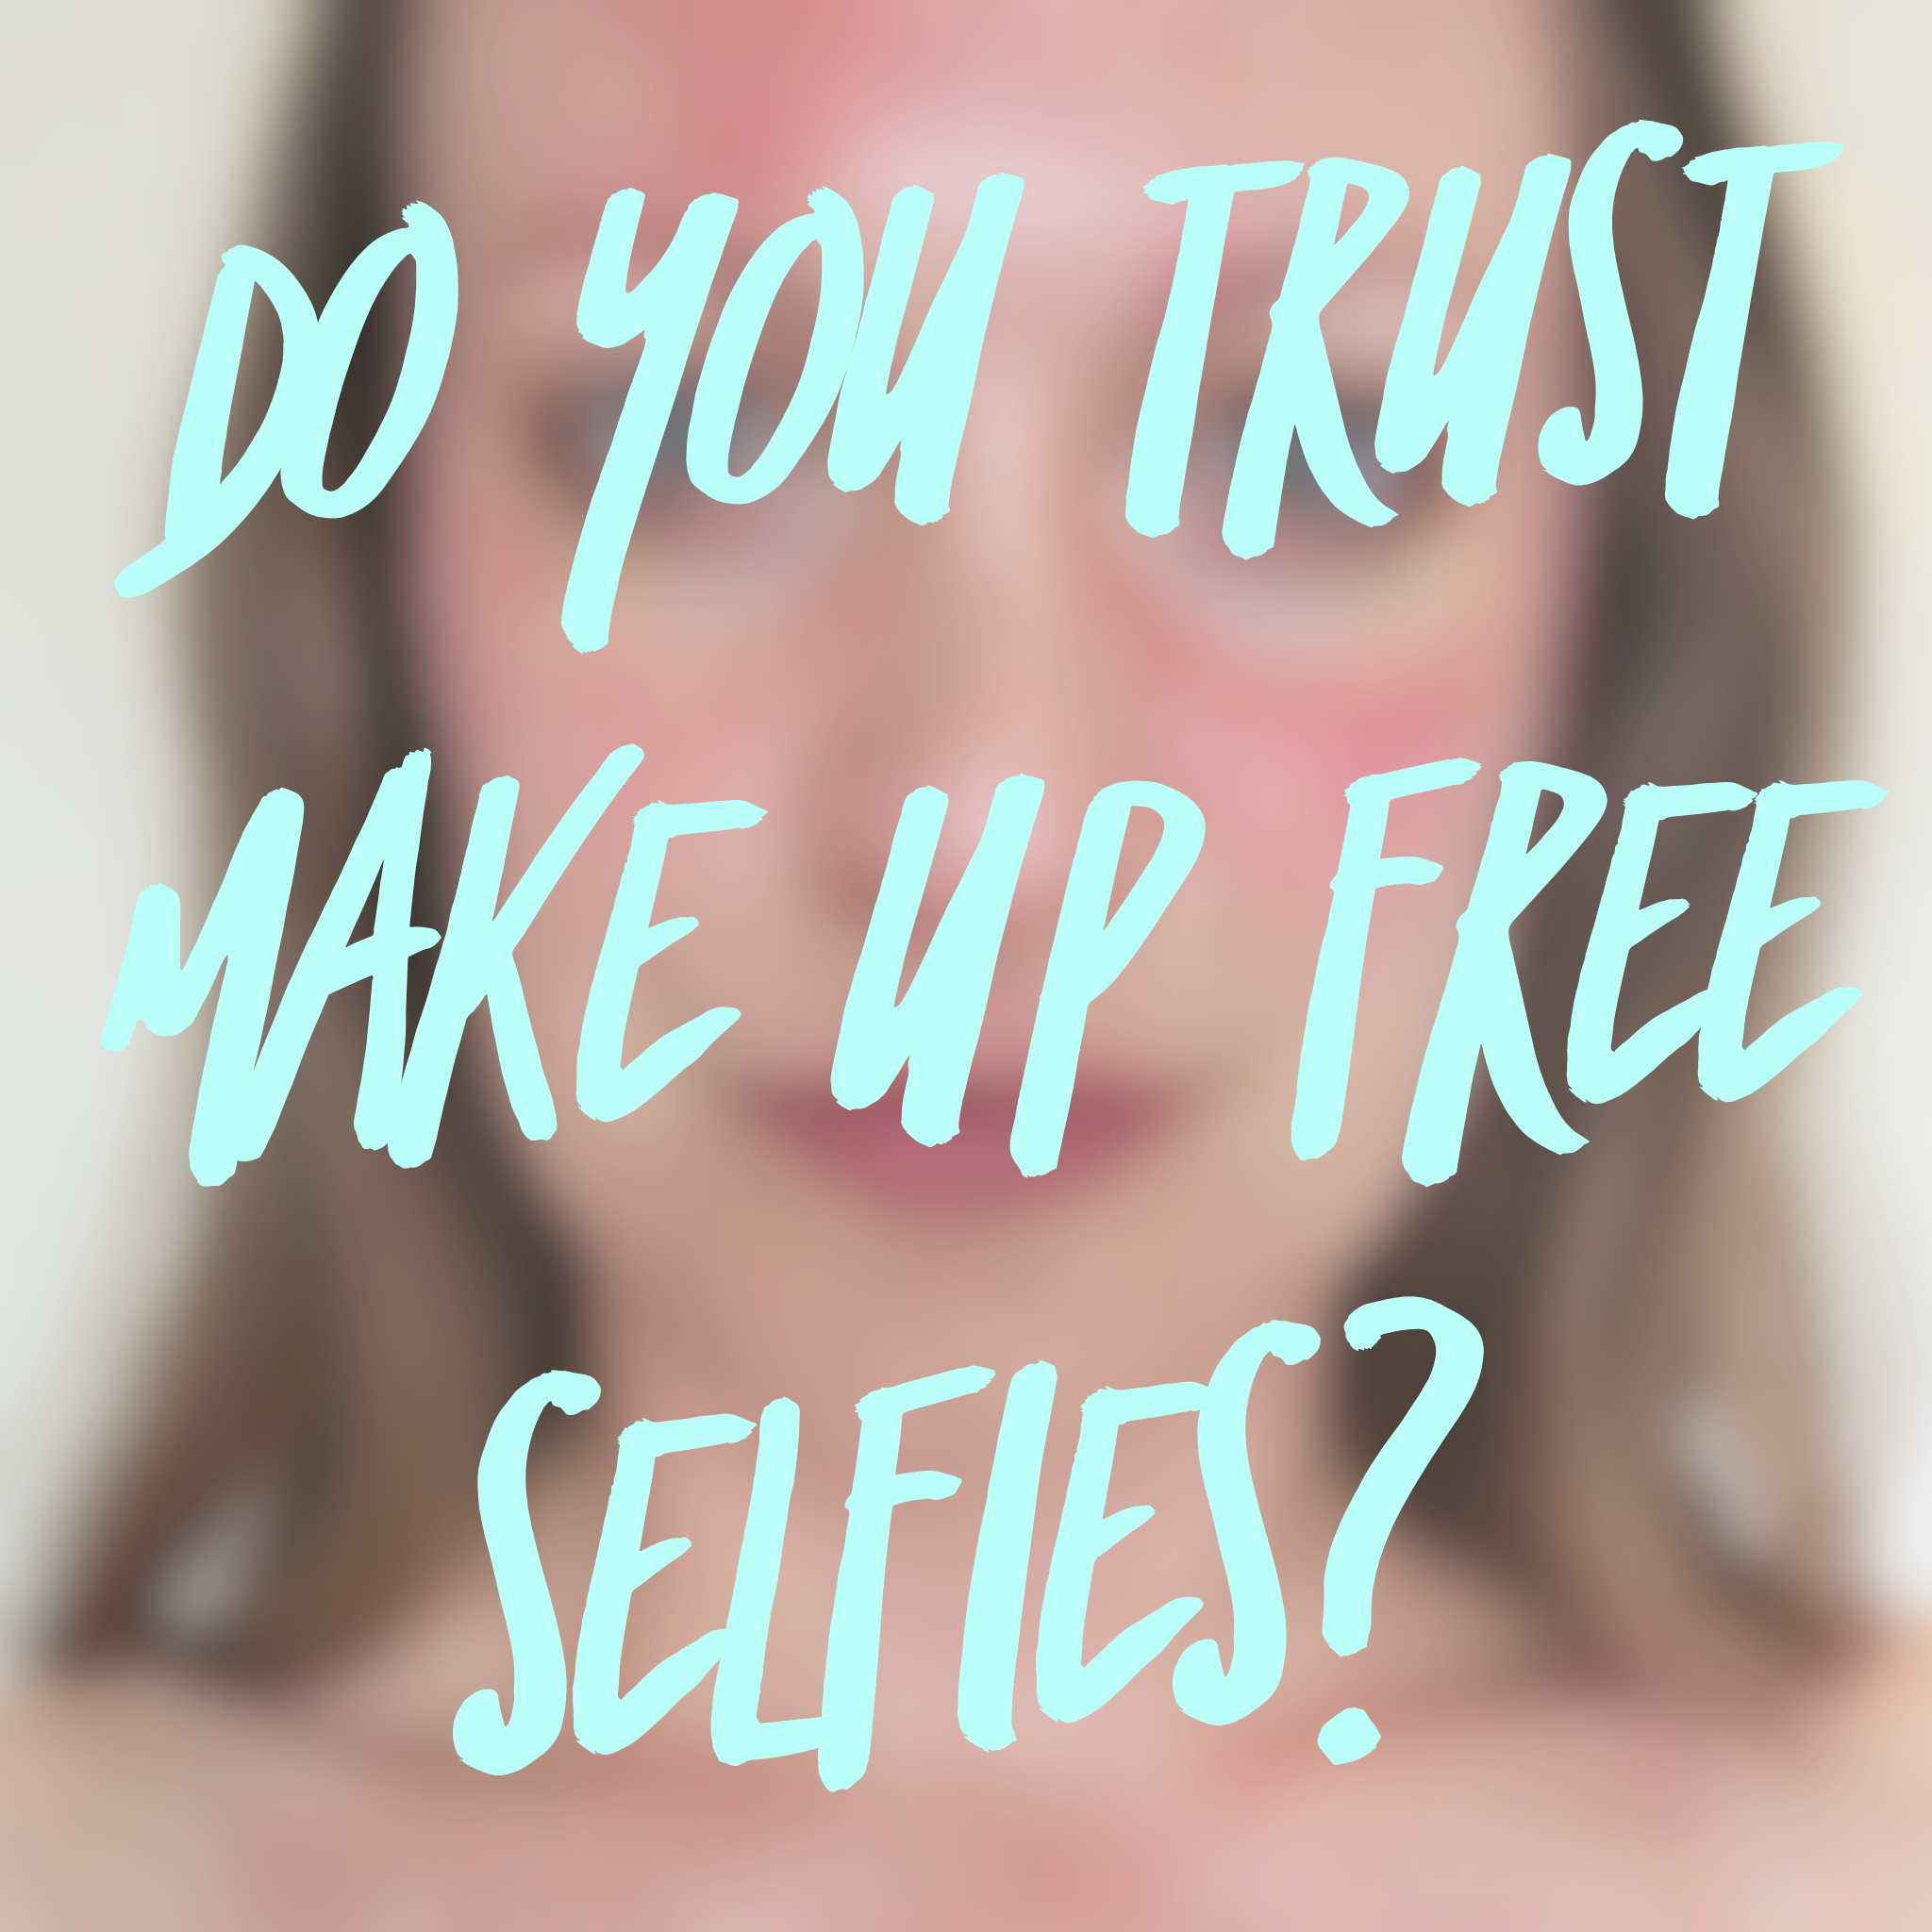 Do you trust make up free selfies?